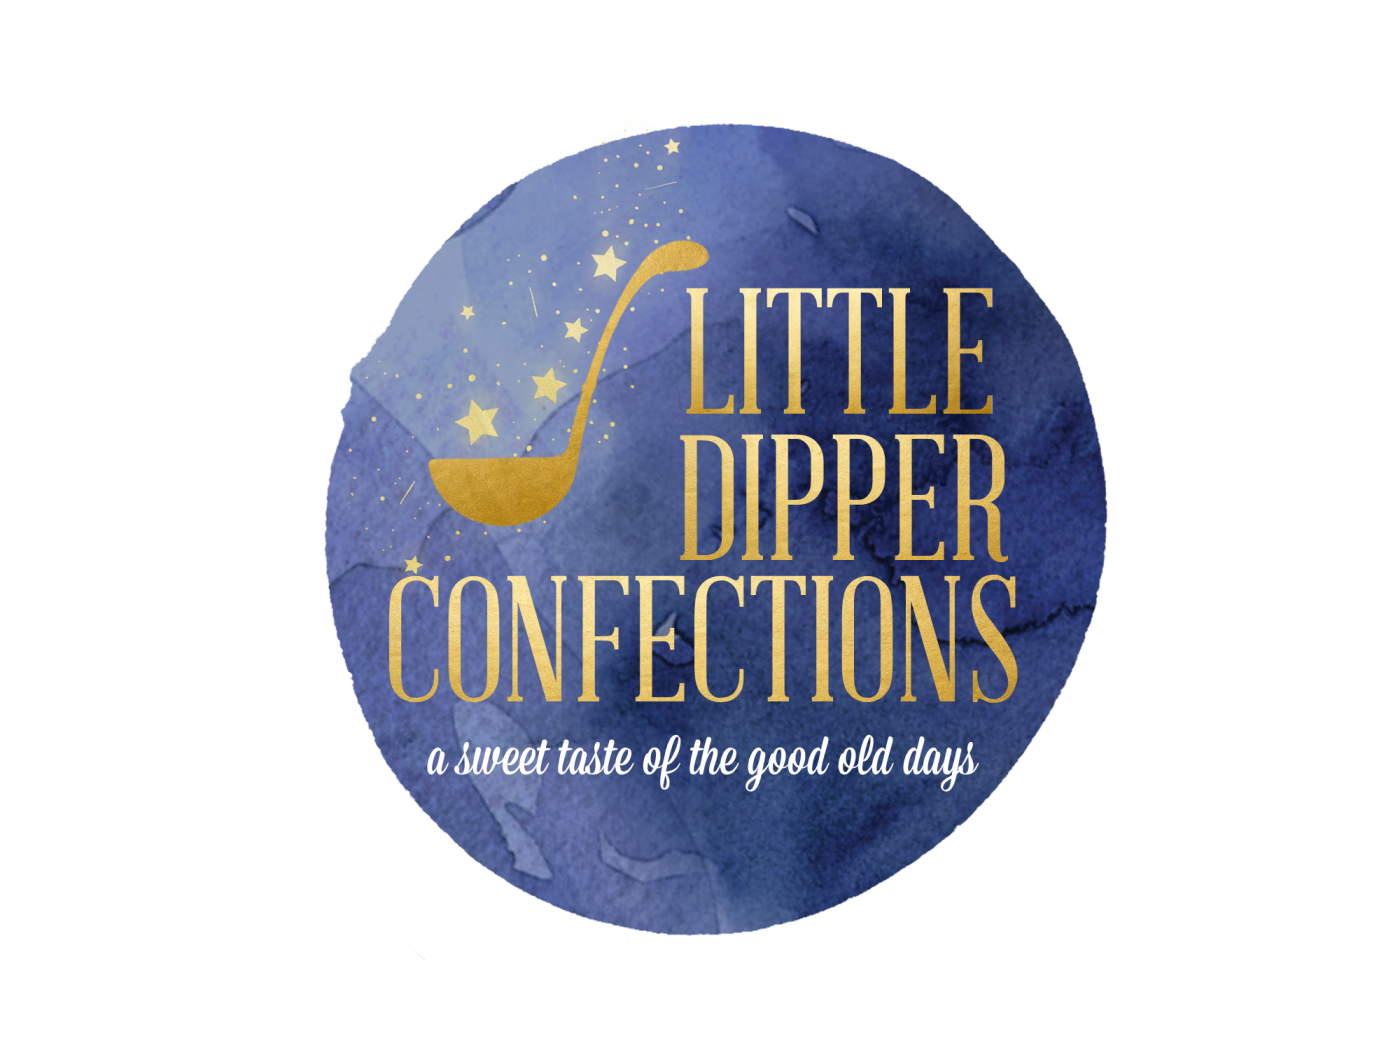 Little Dipper Confections